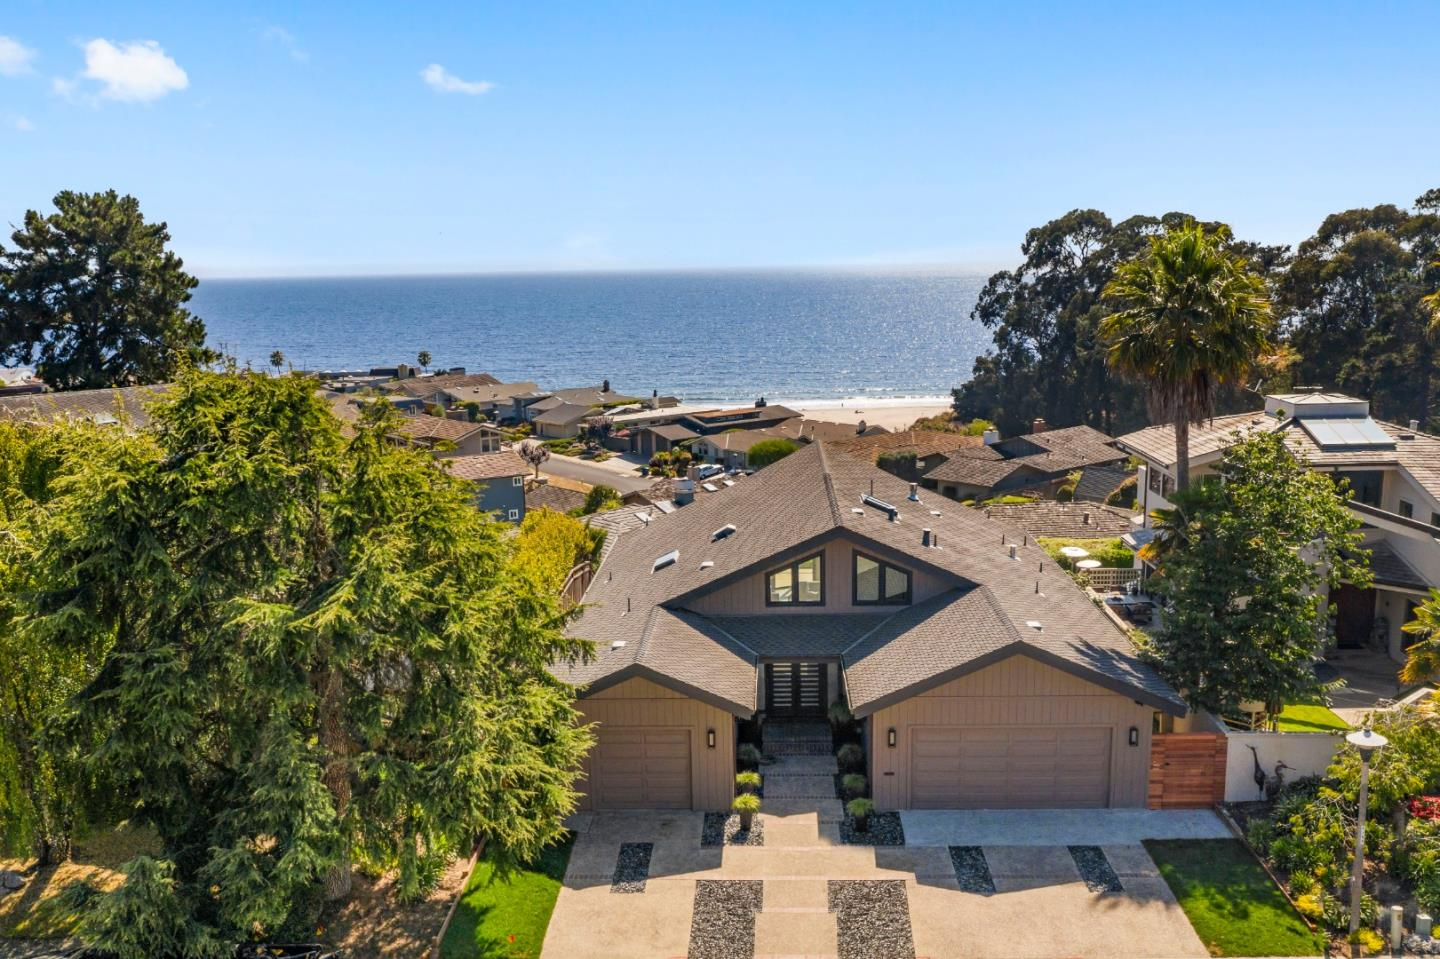 This amazing ocean view home is near remodel completion and located in the sought after neighborhood above Rio Del Mar beach. The ocean view begins when you walk through the double-door entry and into the open concept living space. Folding glass doors take you onto the extensive new deck. Master Bedroom is on the lower level with his & hers bathrooms, his & hers walk-in closets and a fireplace to warm those cool winter evenings.